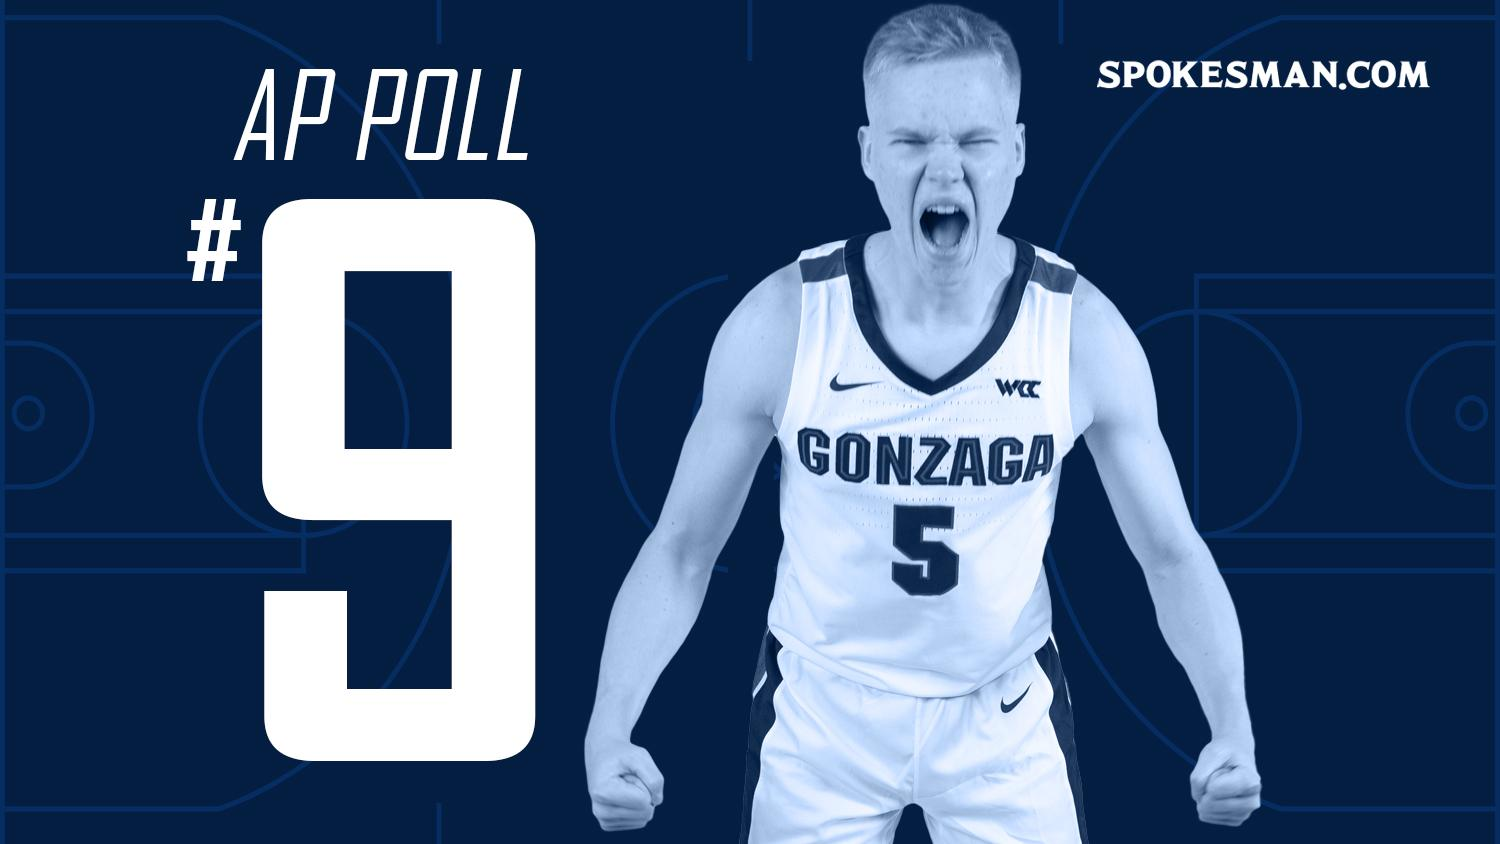 Wolverines jump from unranked to top five in polls